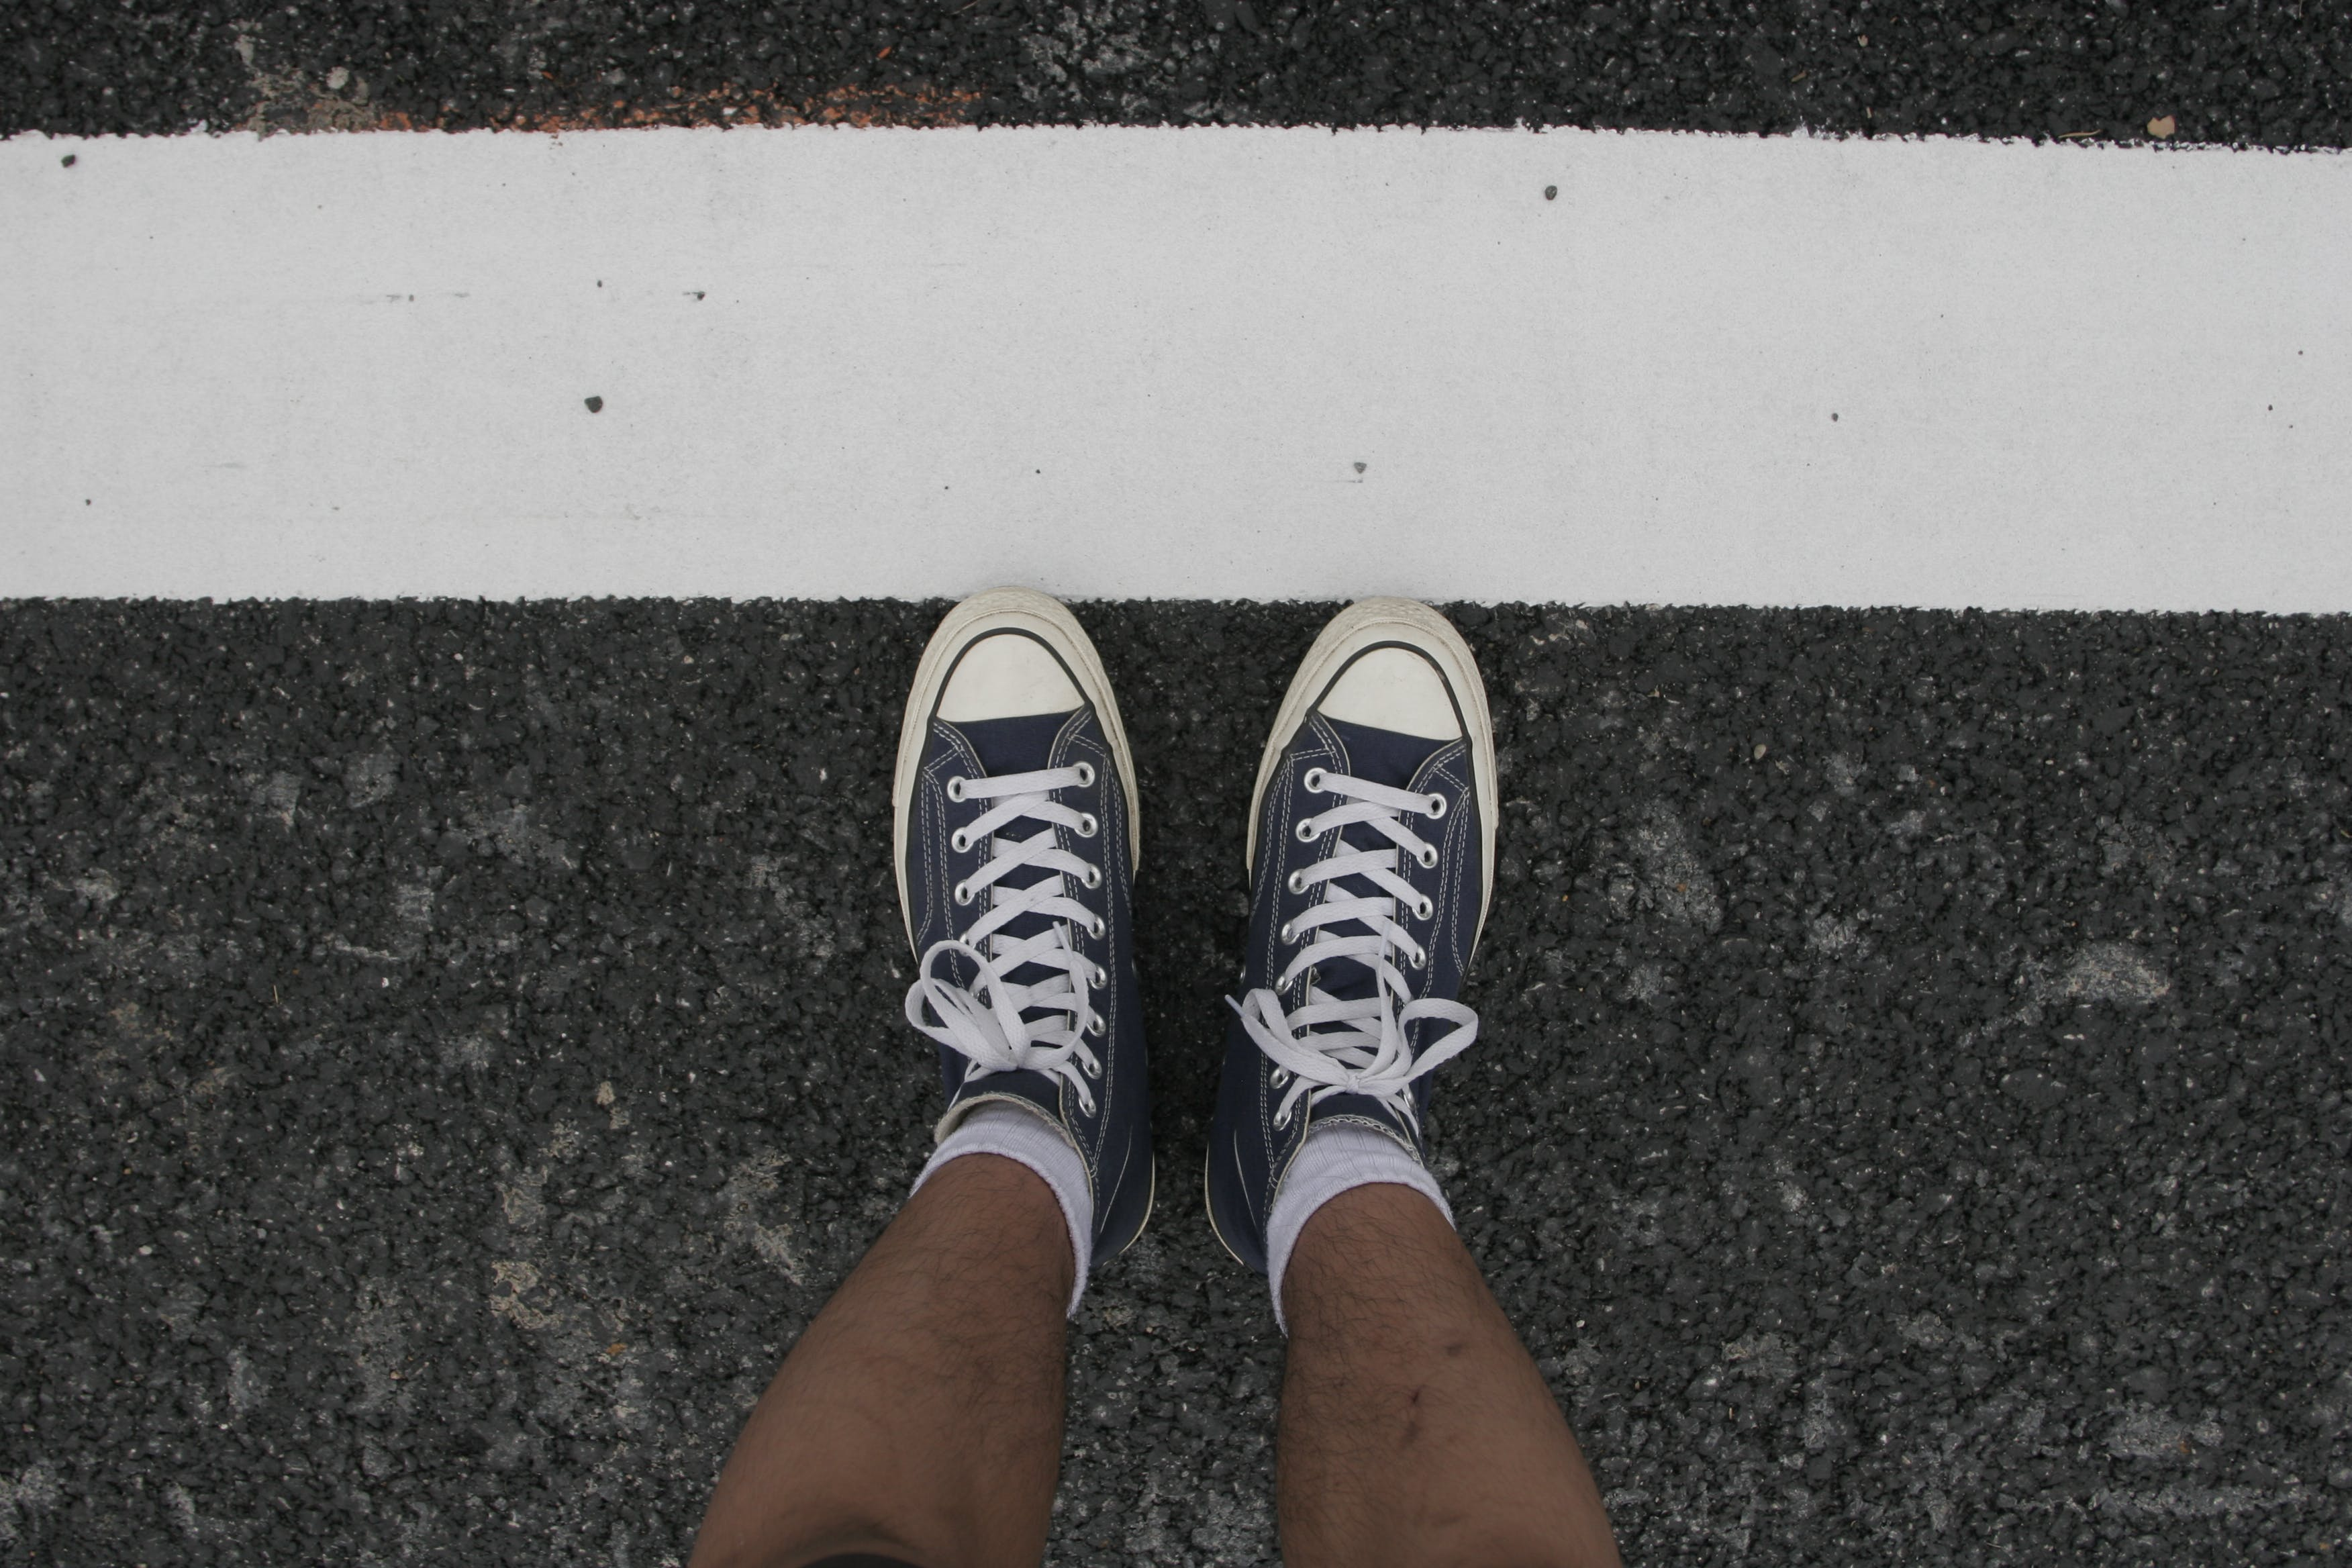 Top View Photo Of Shoes